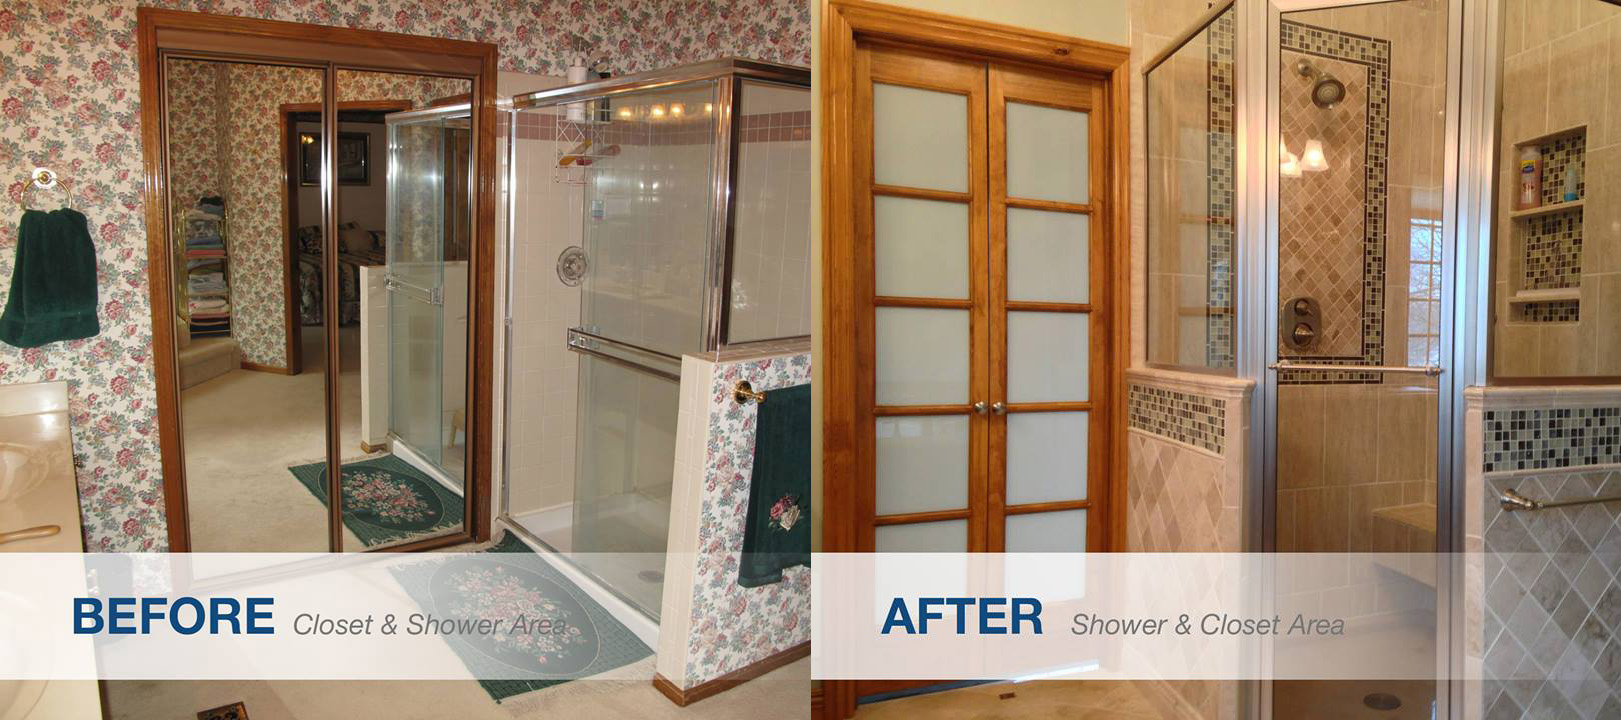 Bathroom Remodeling Before And After Images Cmp Construction